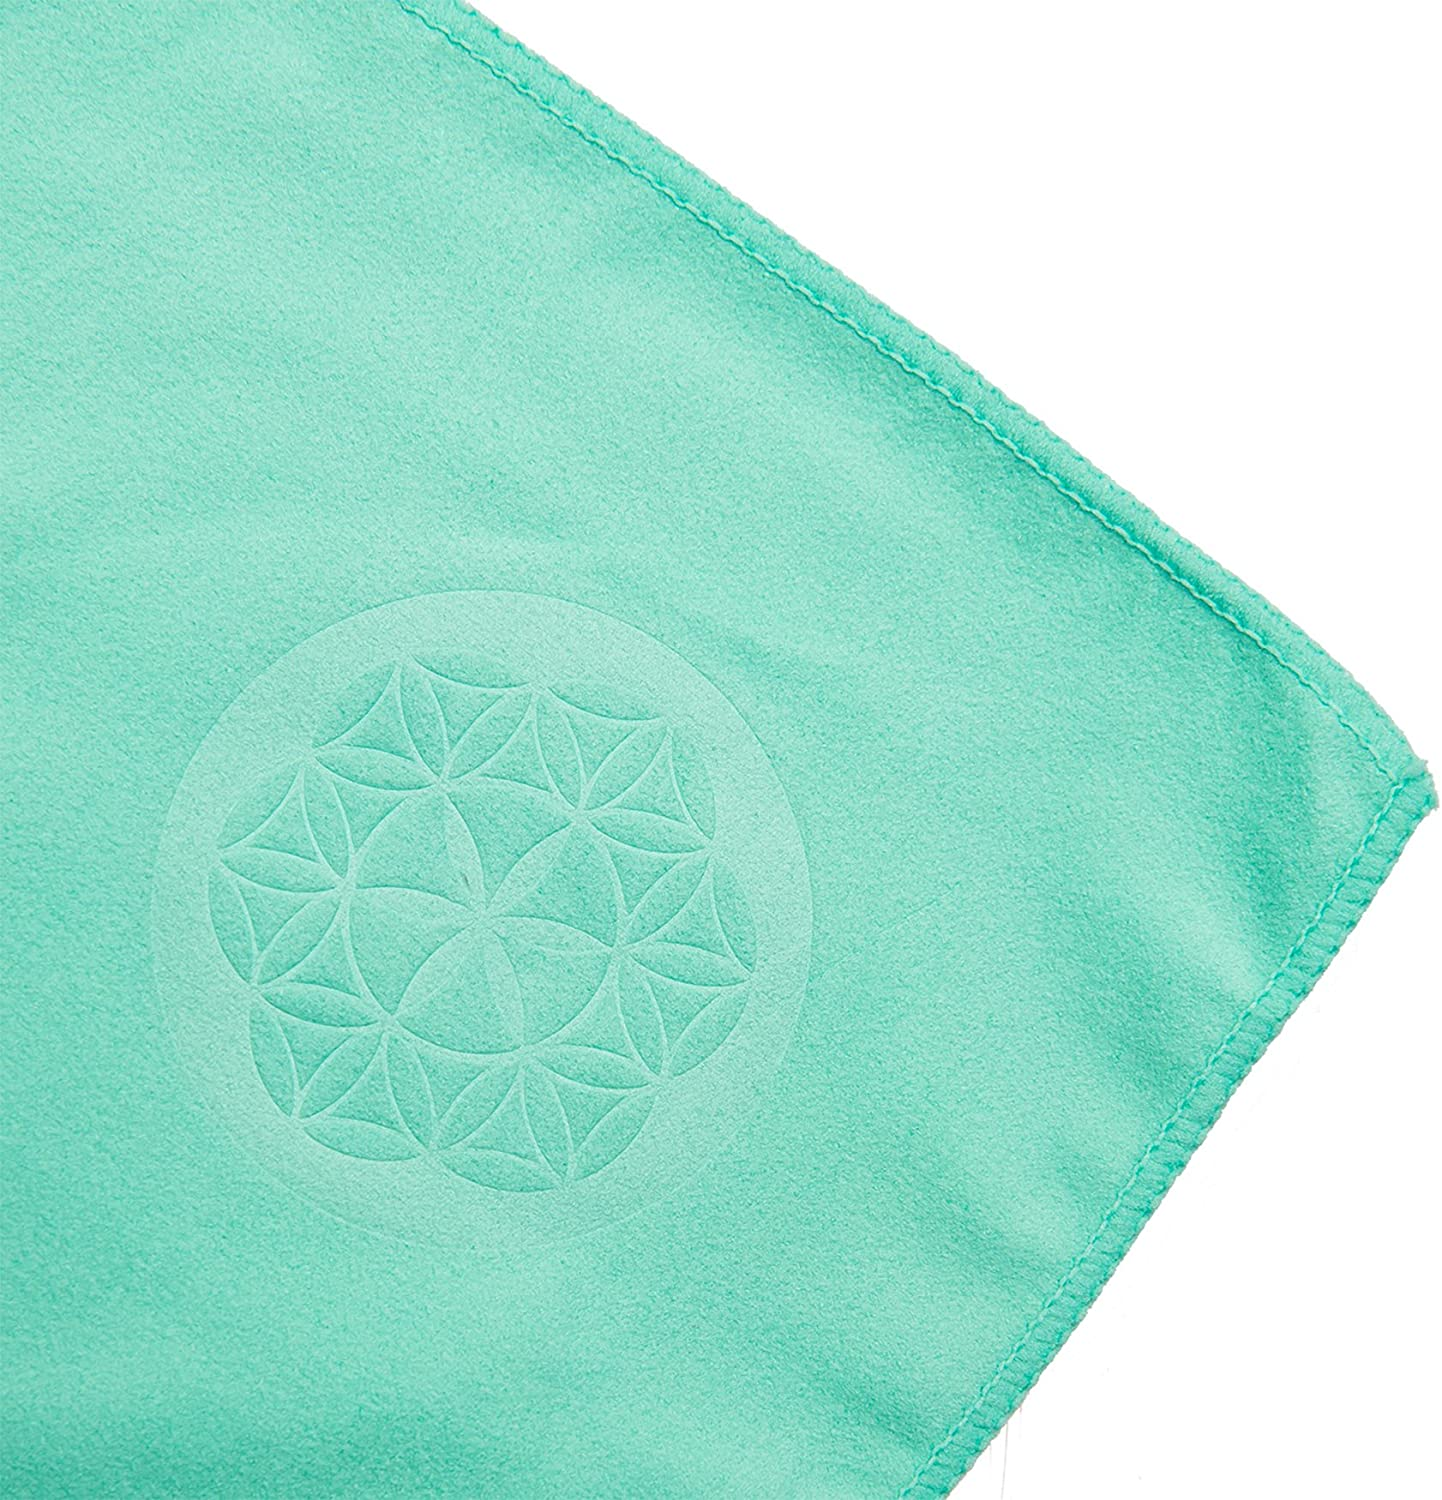 Dish or Bath. Camping Fast Drying /& Compact Sport Golf Workout Pool Kitchen Microfiber Travel /& Sports Towel Beach Great for Yoga Absorbent Fitness Gym